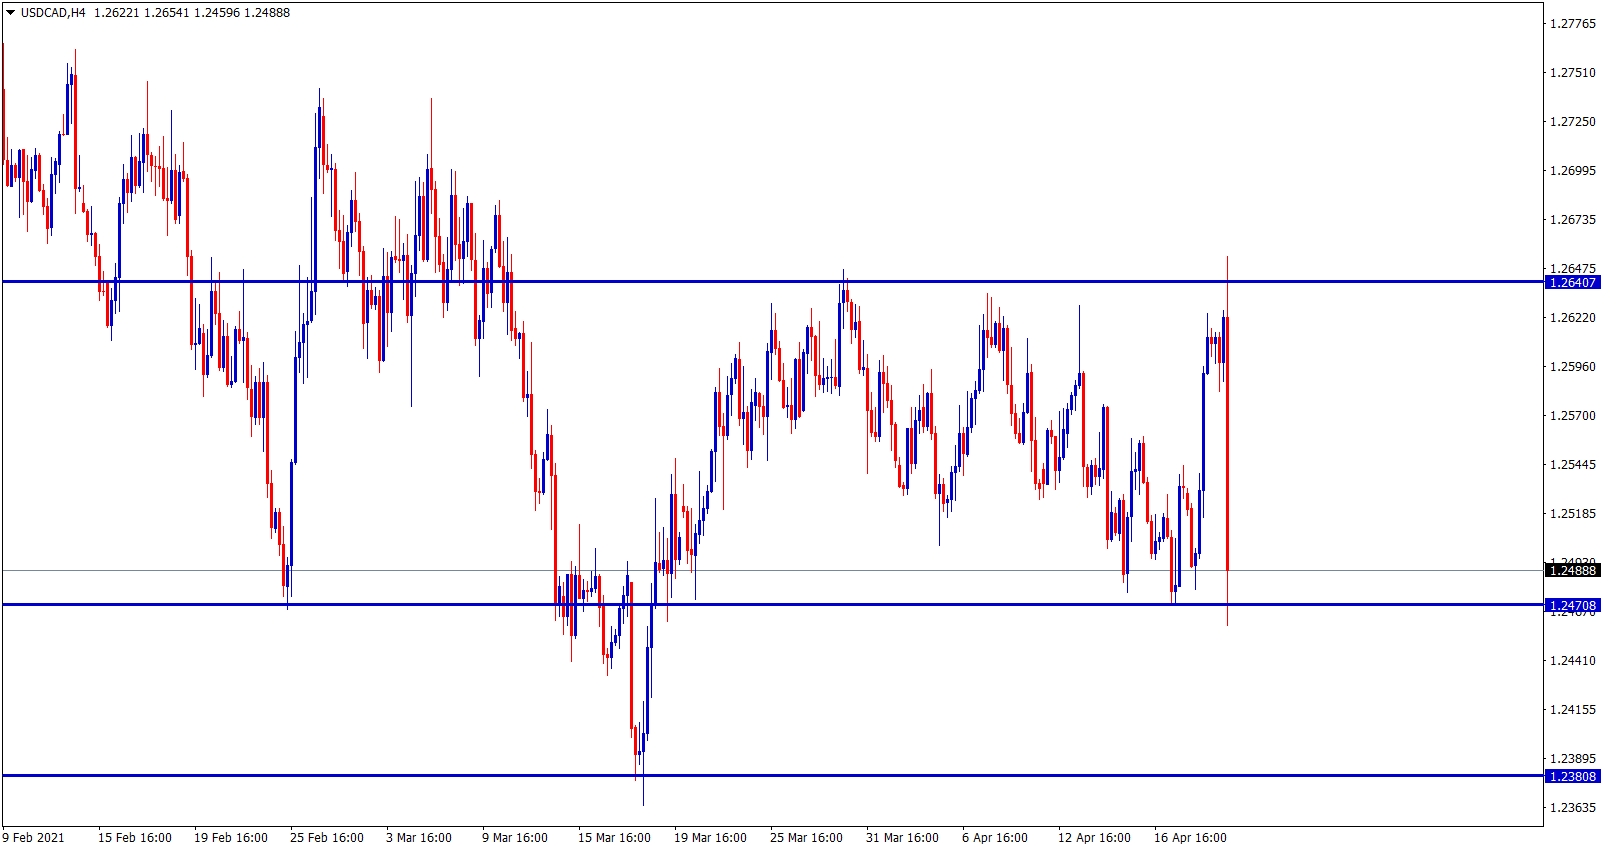 USDCAD fall to the support after BOC Rate decision and monetary policy report